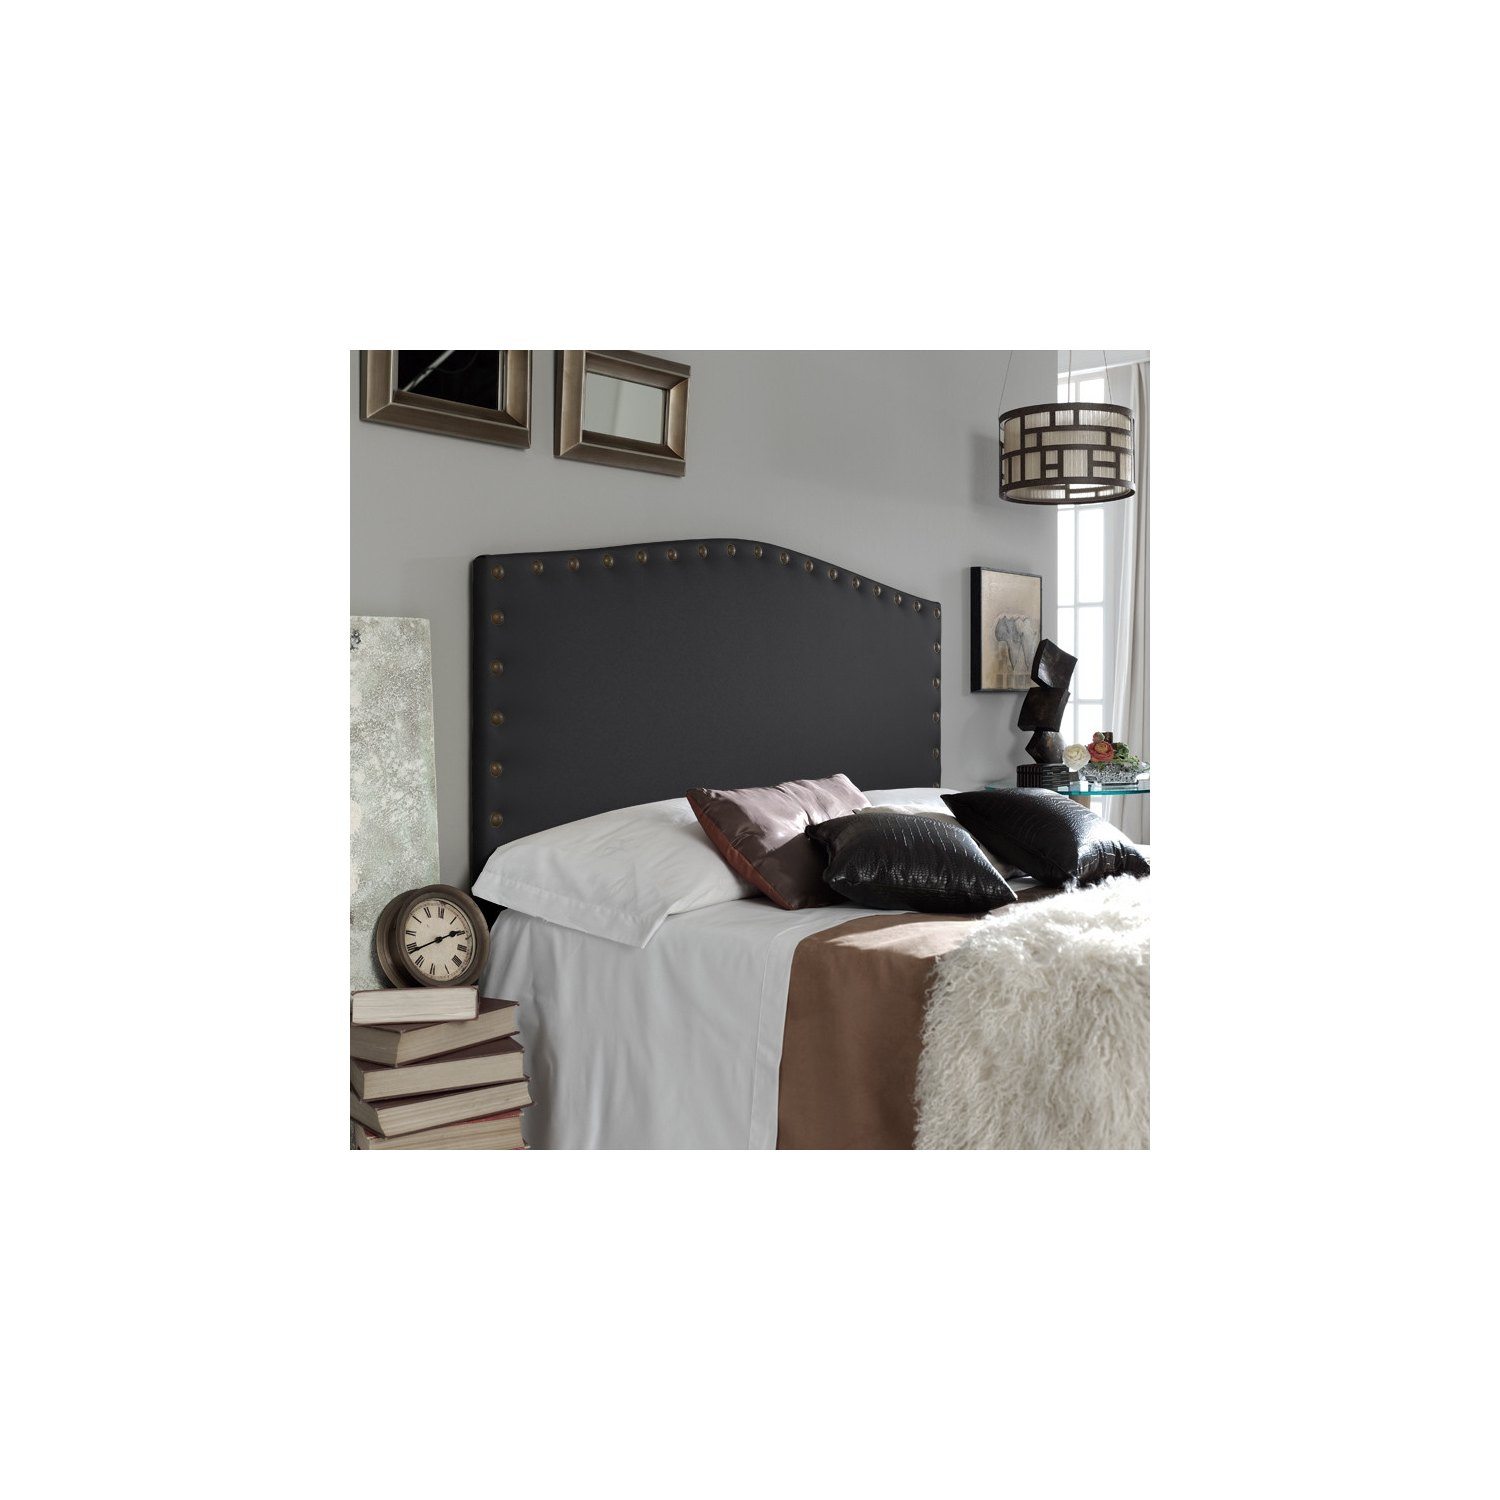 t te de lit design tapiss e en cuir synth tique avec rivets. Black Bedroom Furniture Sets. Home Design Ideas